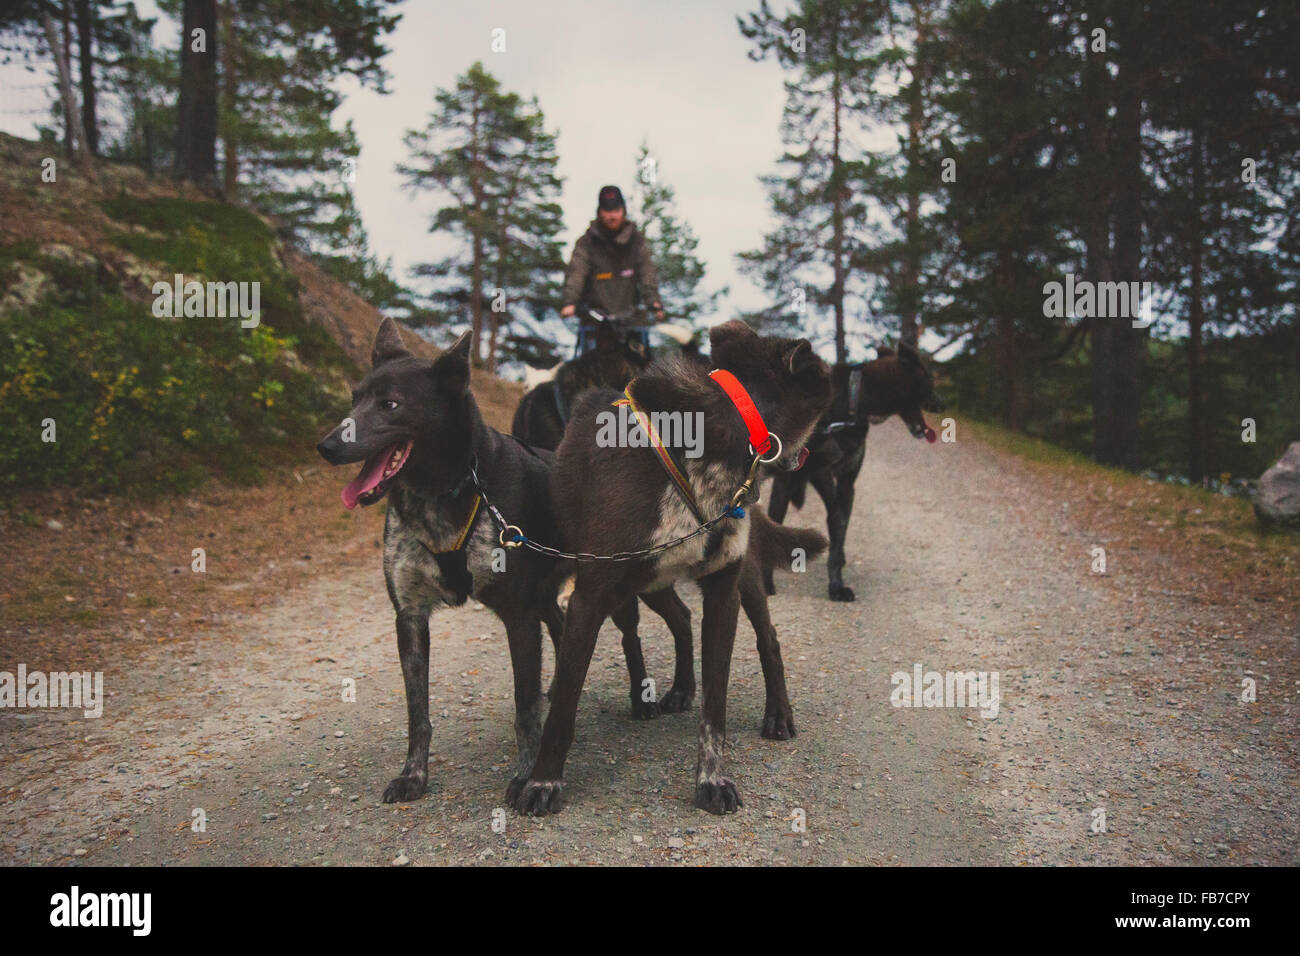 Man with sled dogs on road - Stock Image